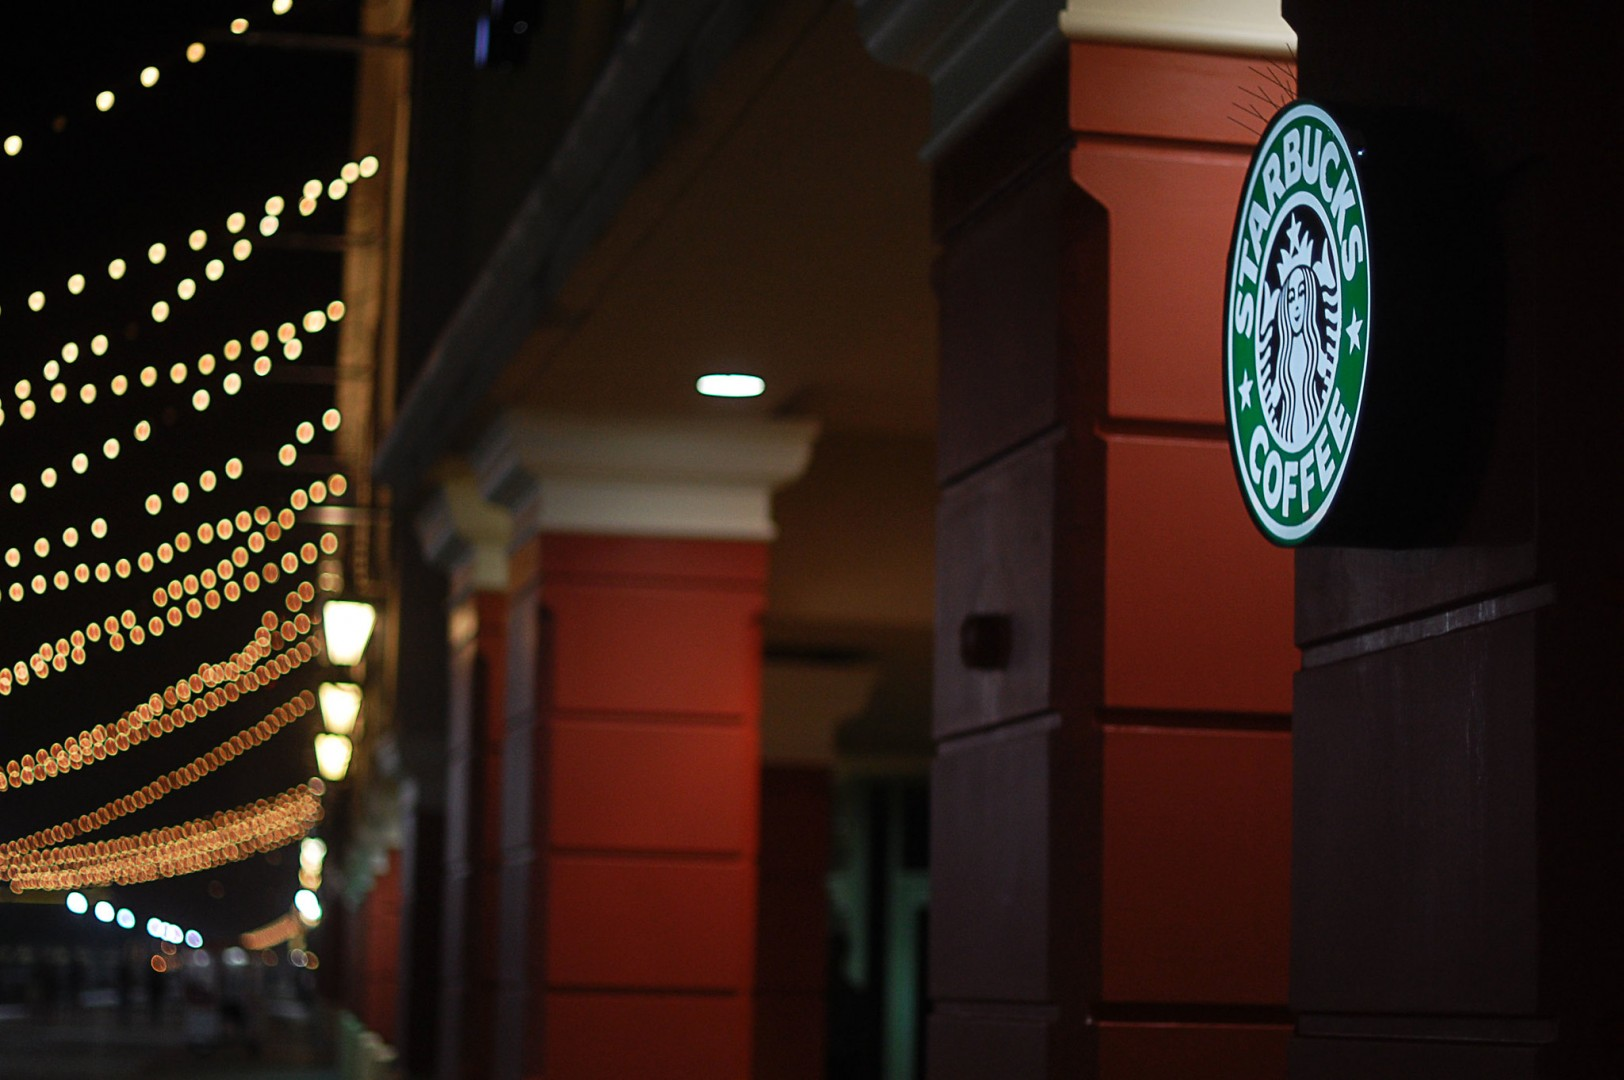 The deal will land Starbucks with 46MW of all 100MW produced by a BayWa r.e. plant, plus 50MW from a separate Cypress Creek project (Credit: Flickr / MickiTakesPictures)